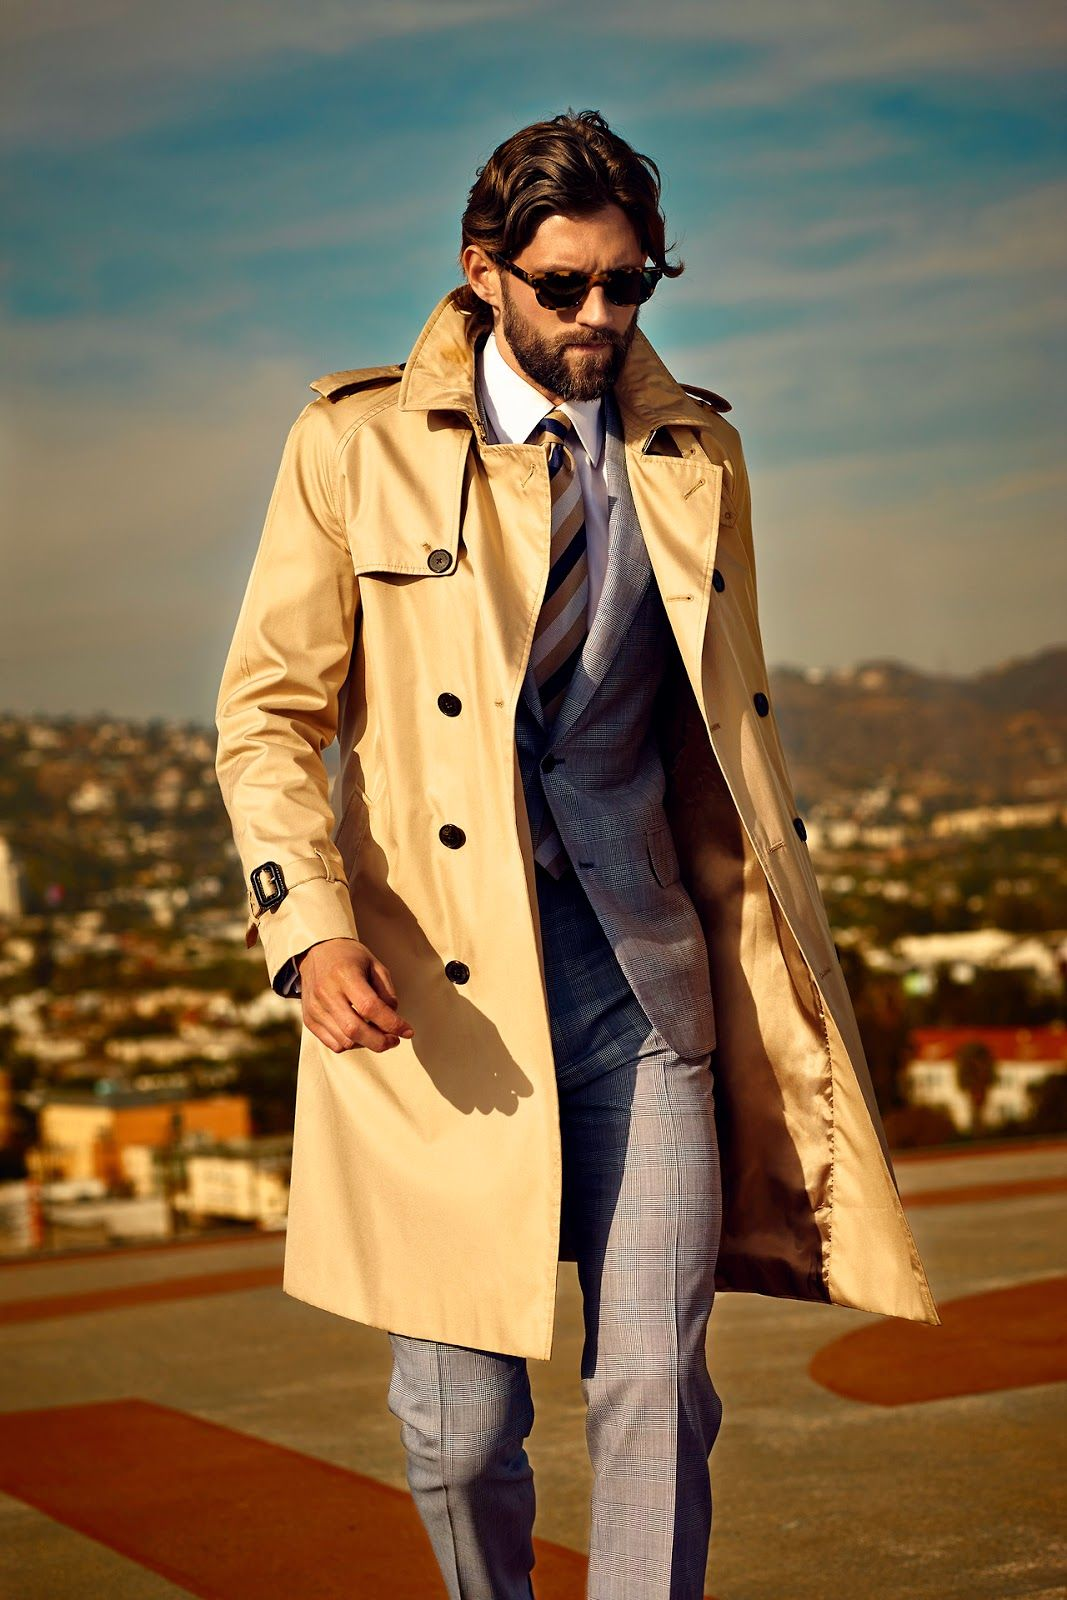 trench coat and light suit    perfect for spring   style ... 68a5e74be6aa